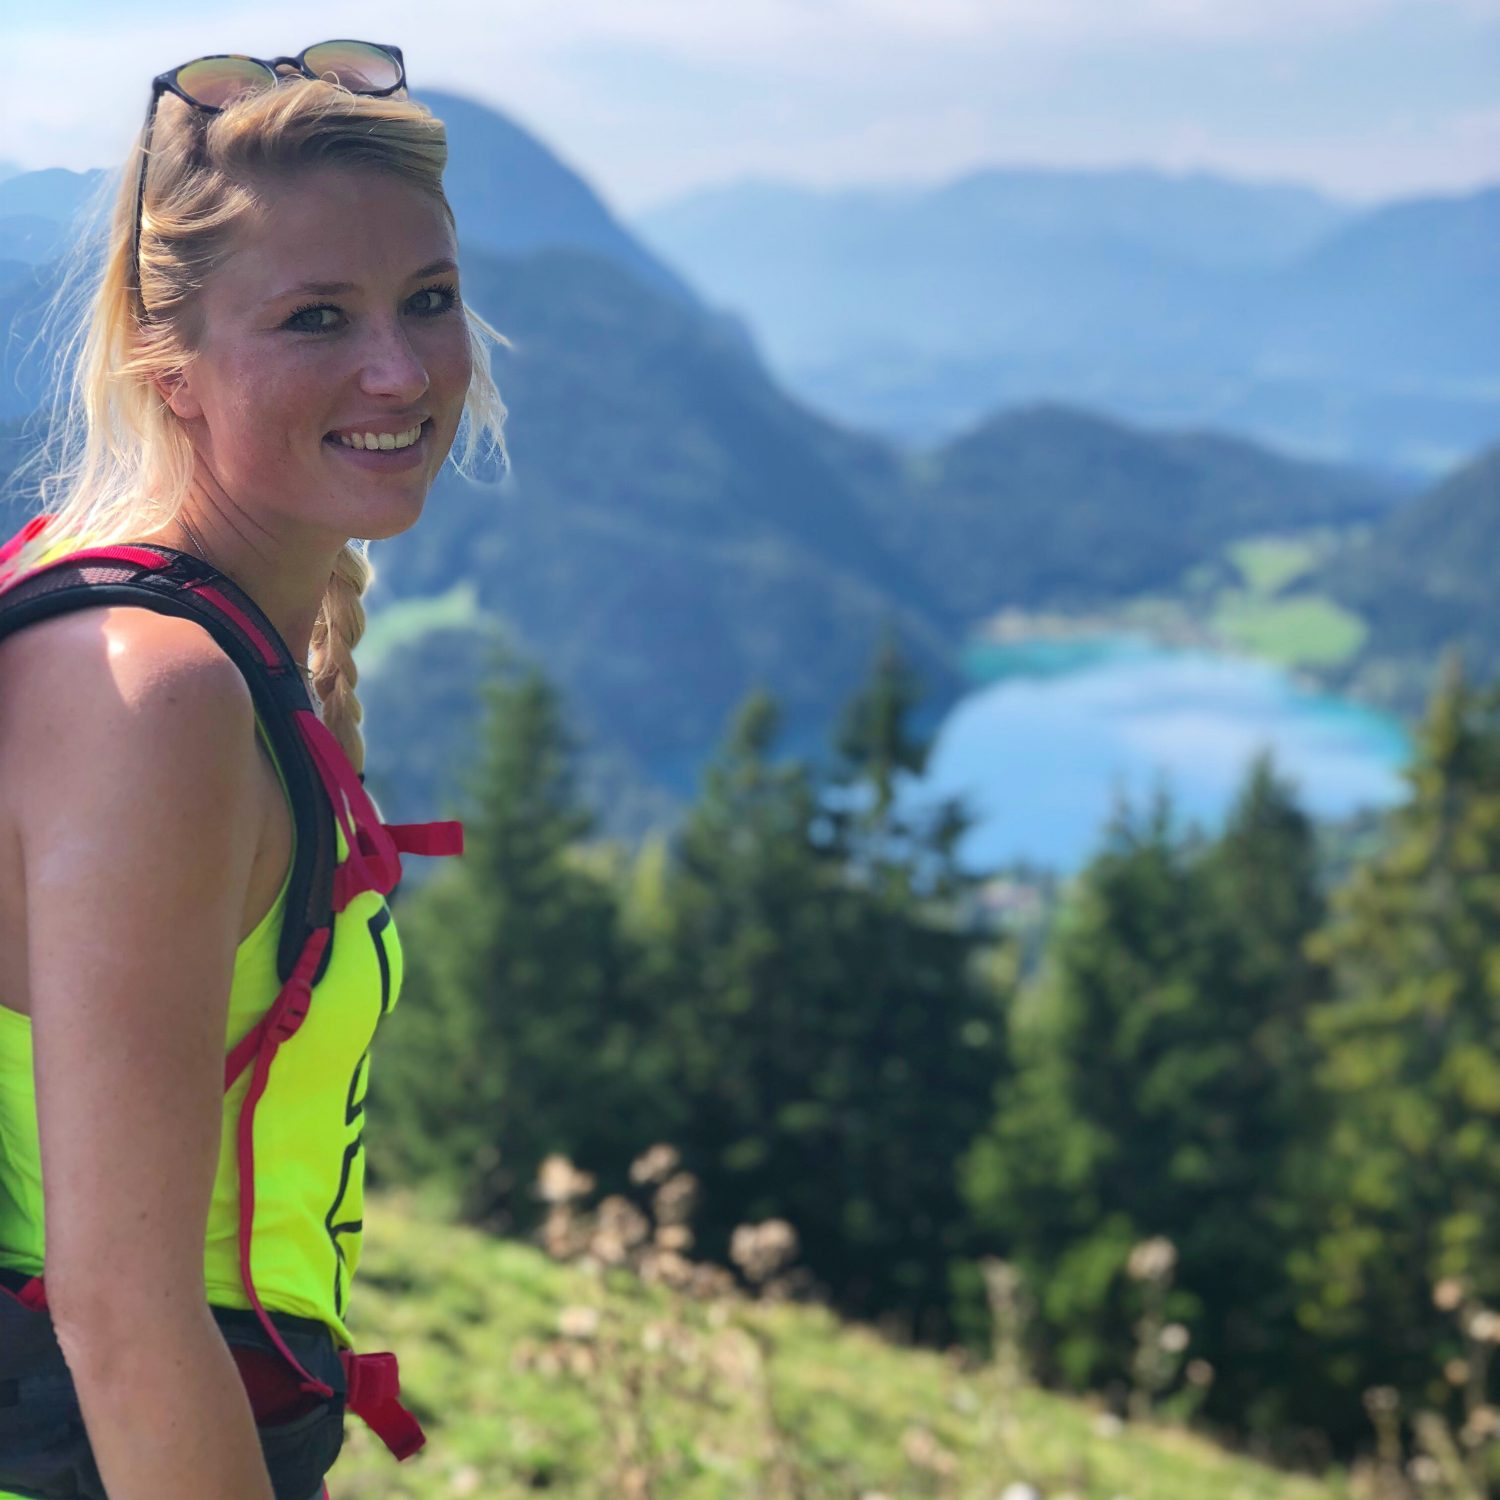 Hiking trip Austria - What to pack?